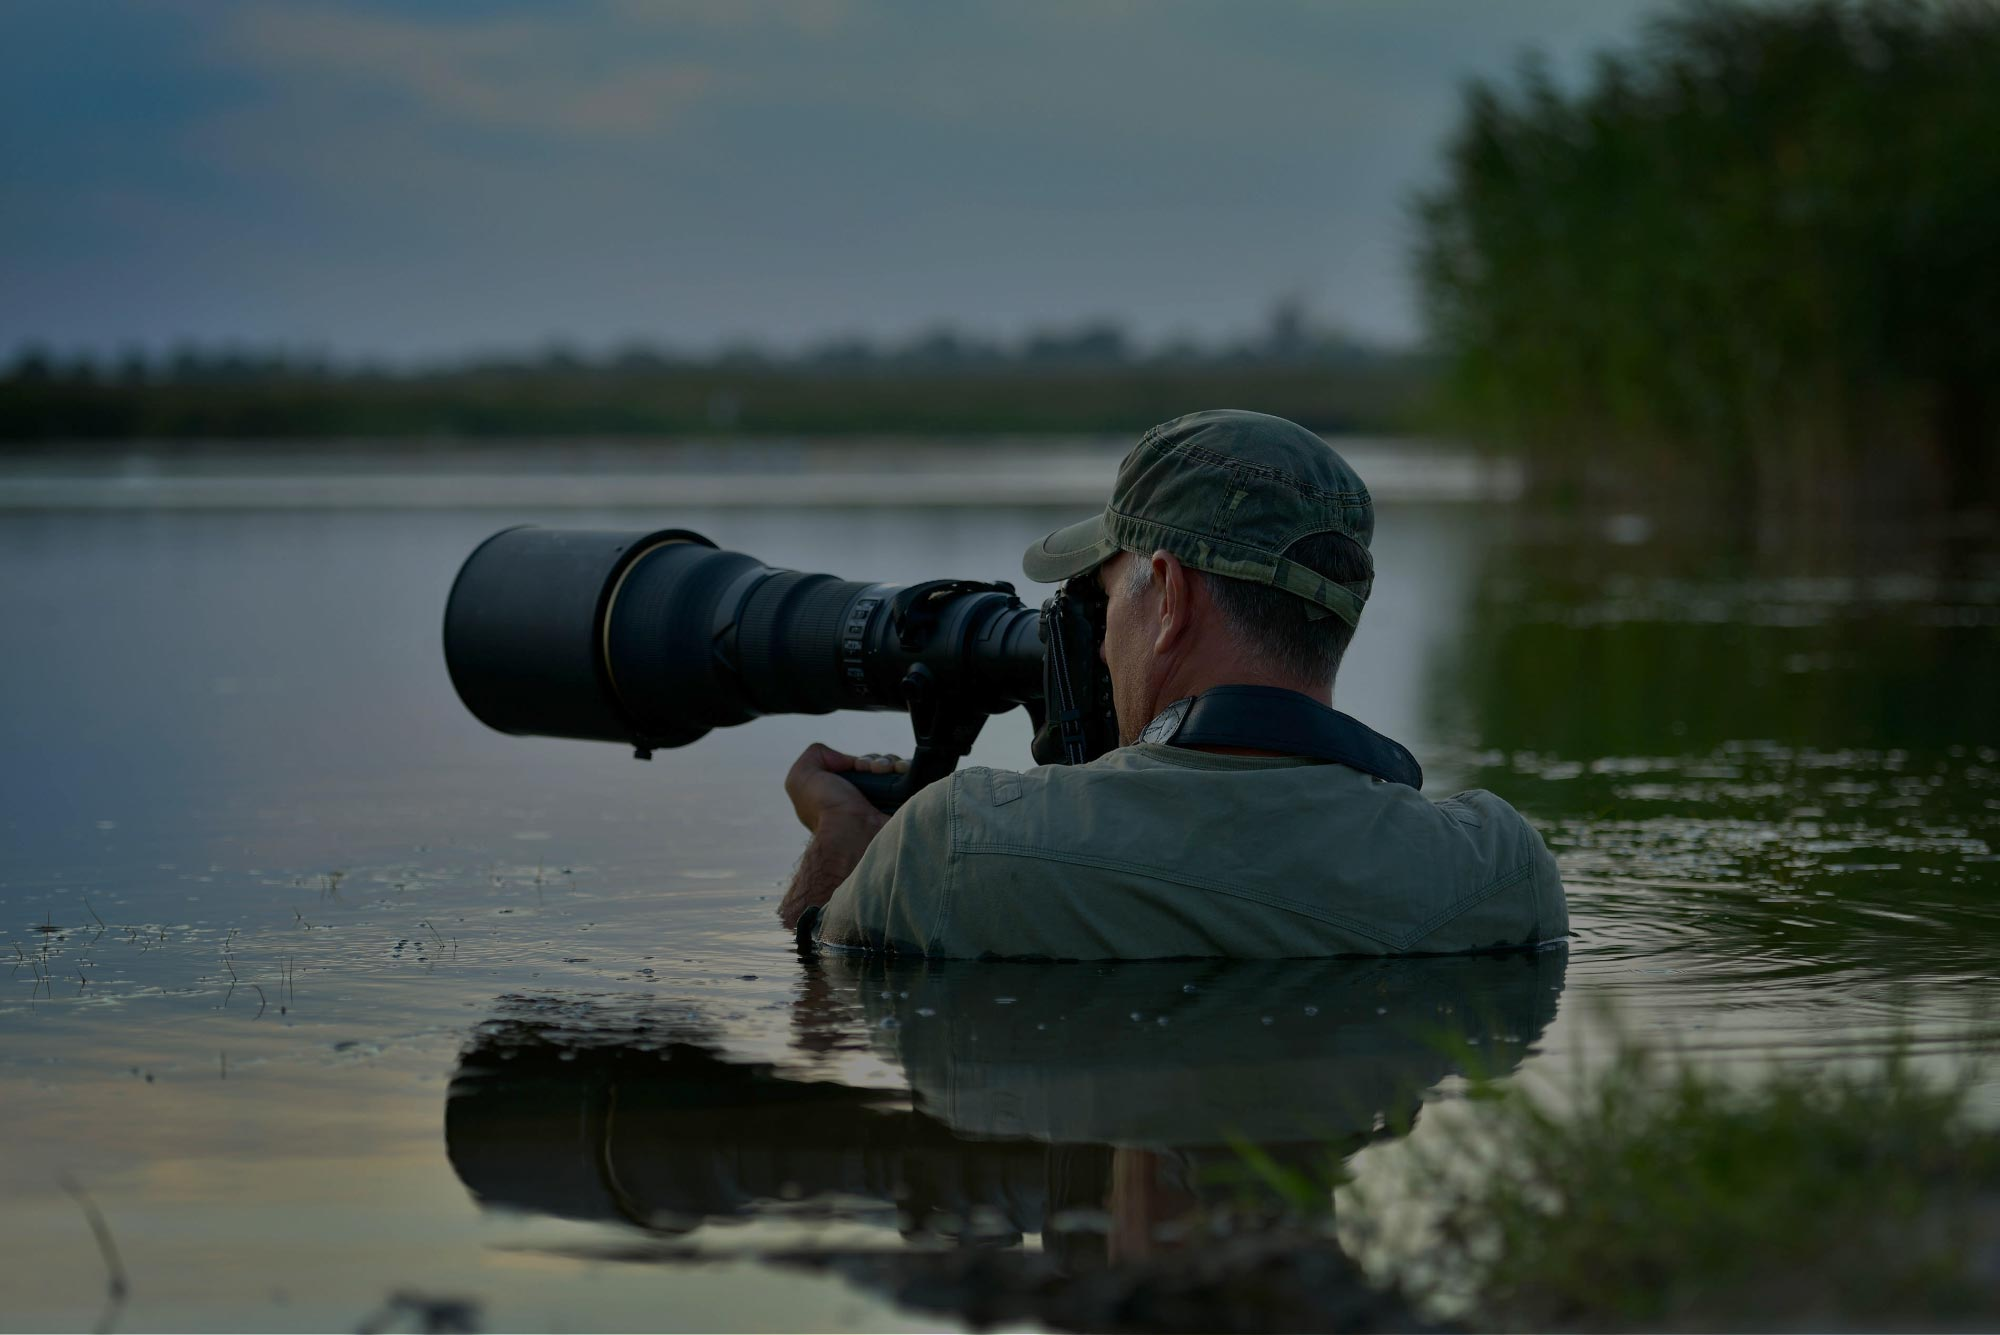 man photographing in water with large camera lens